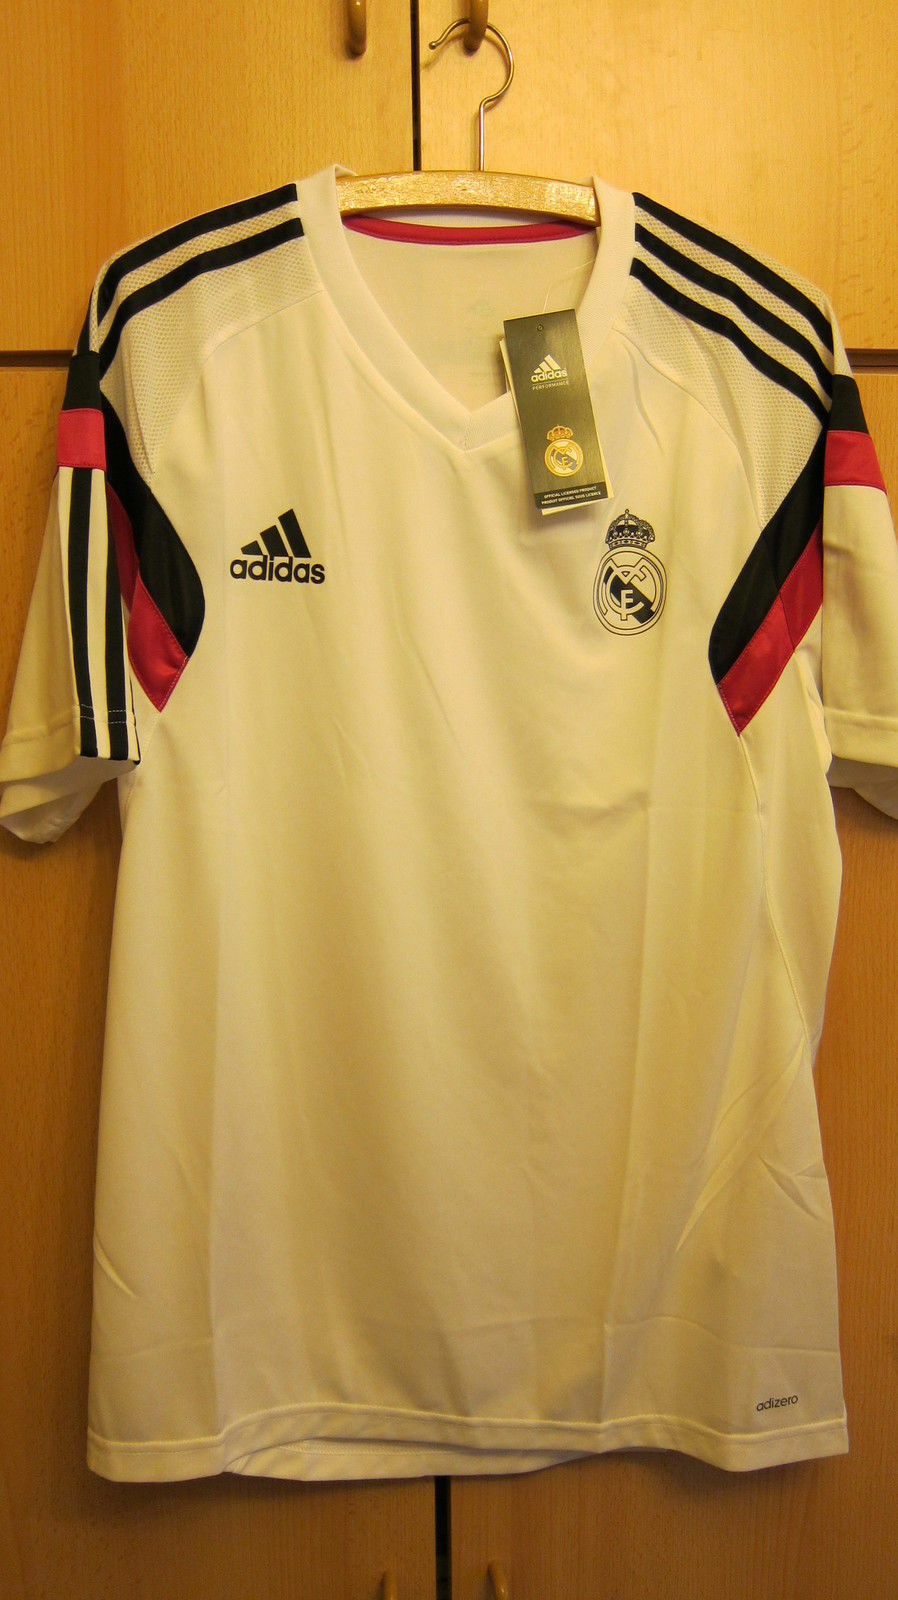 New,Adidas Real Madrid Trikot,Player issue, XL jersey,camisa,maglia,maillot  | Feine Verarbeitung